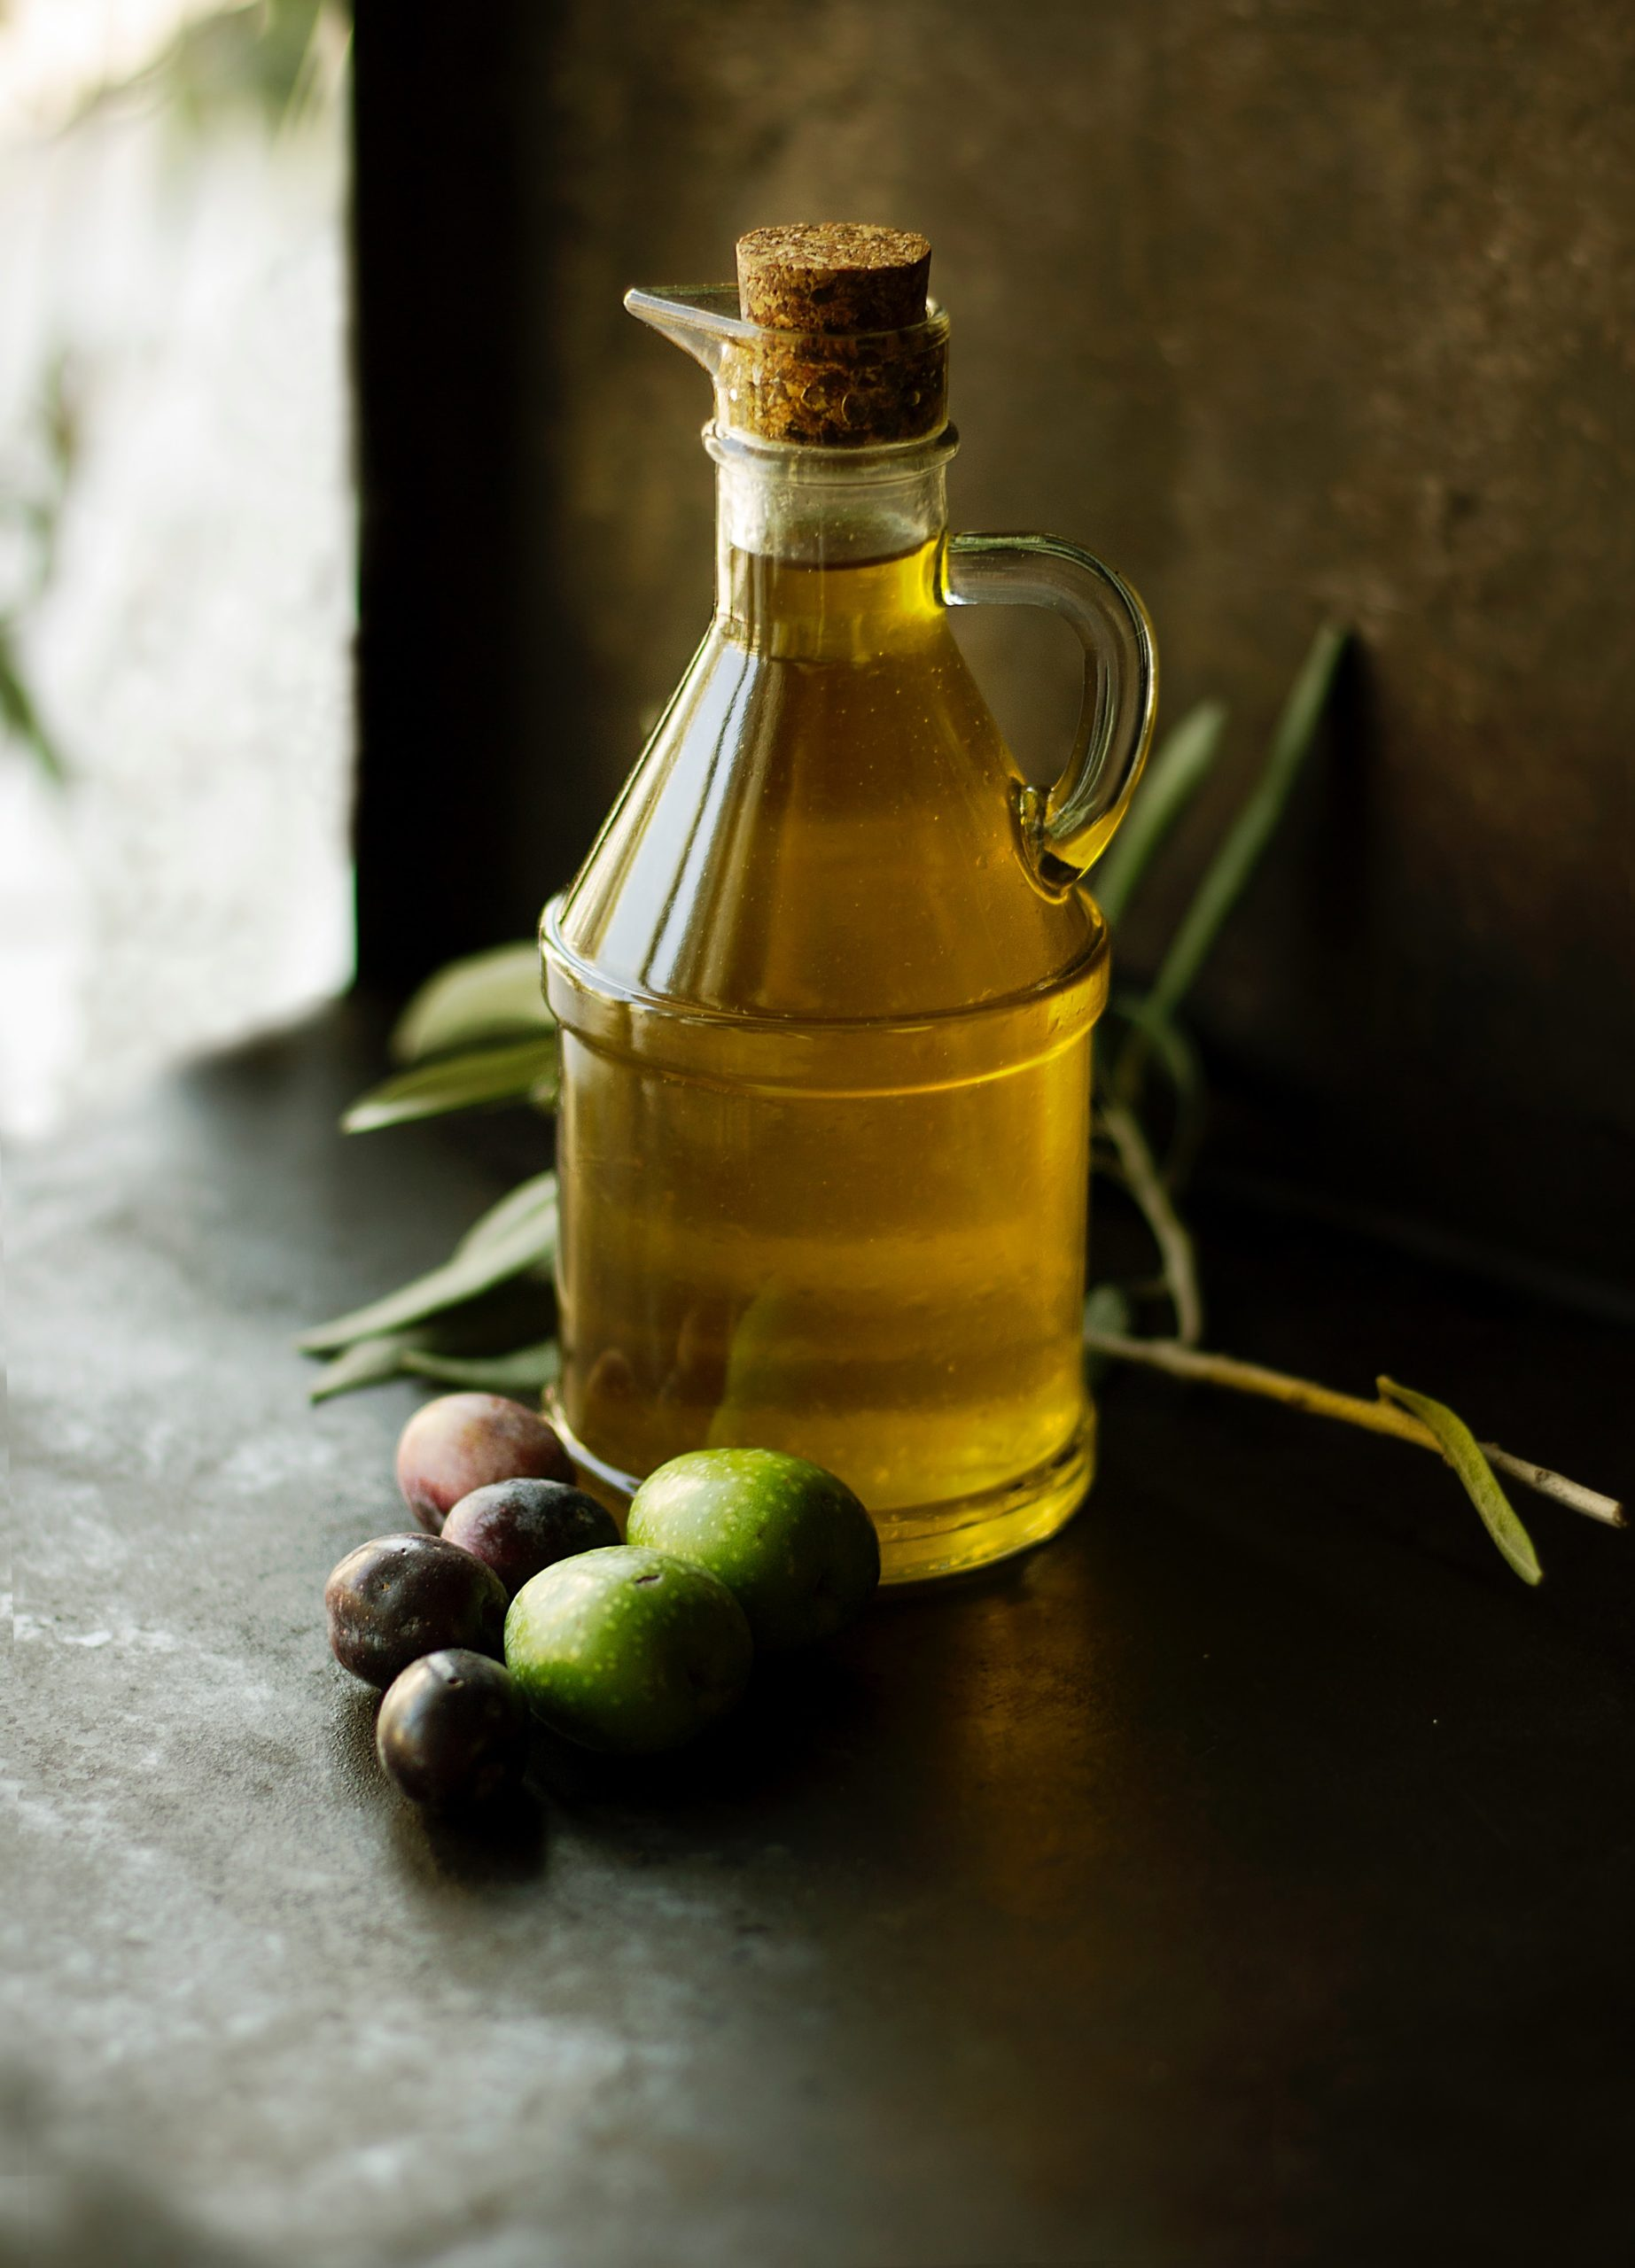 No additives in extra virgin olive oil